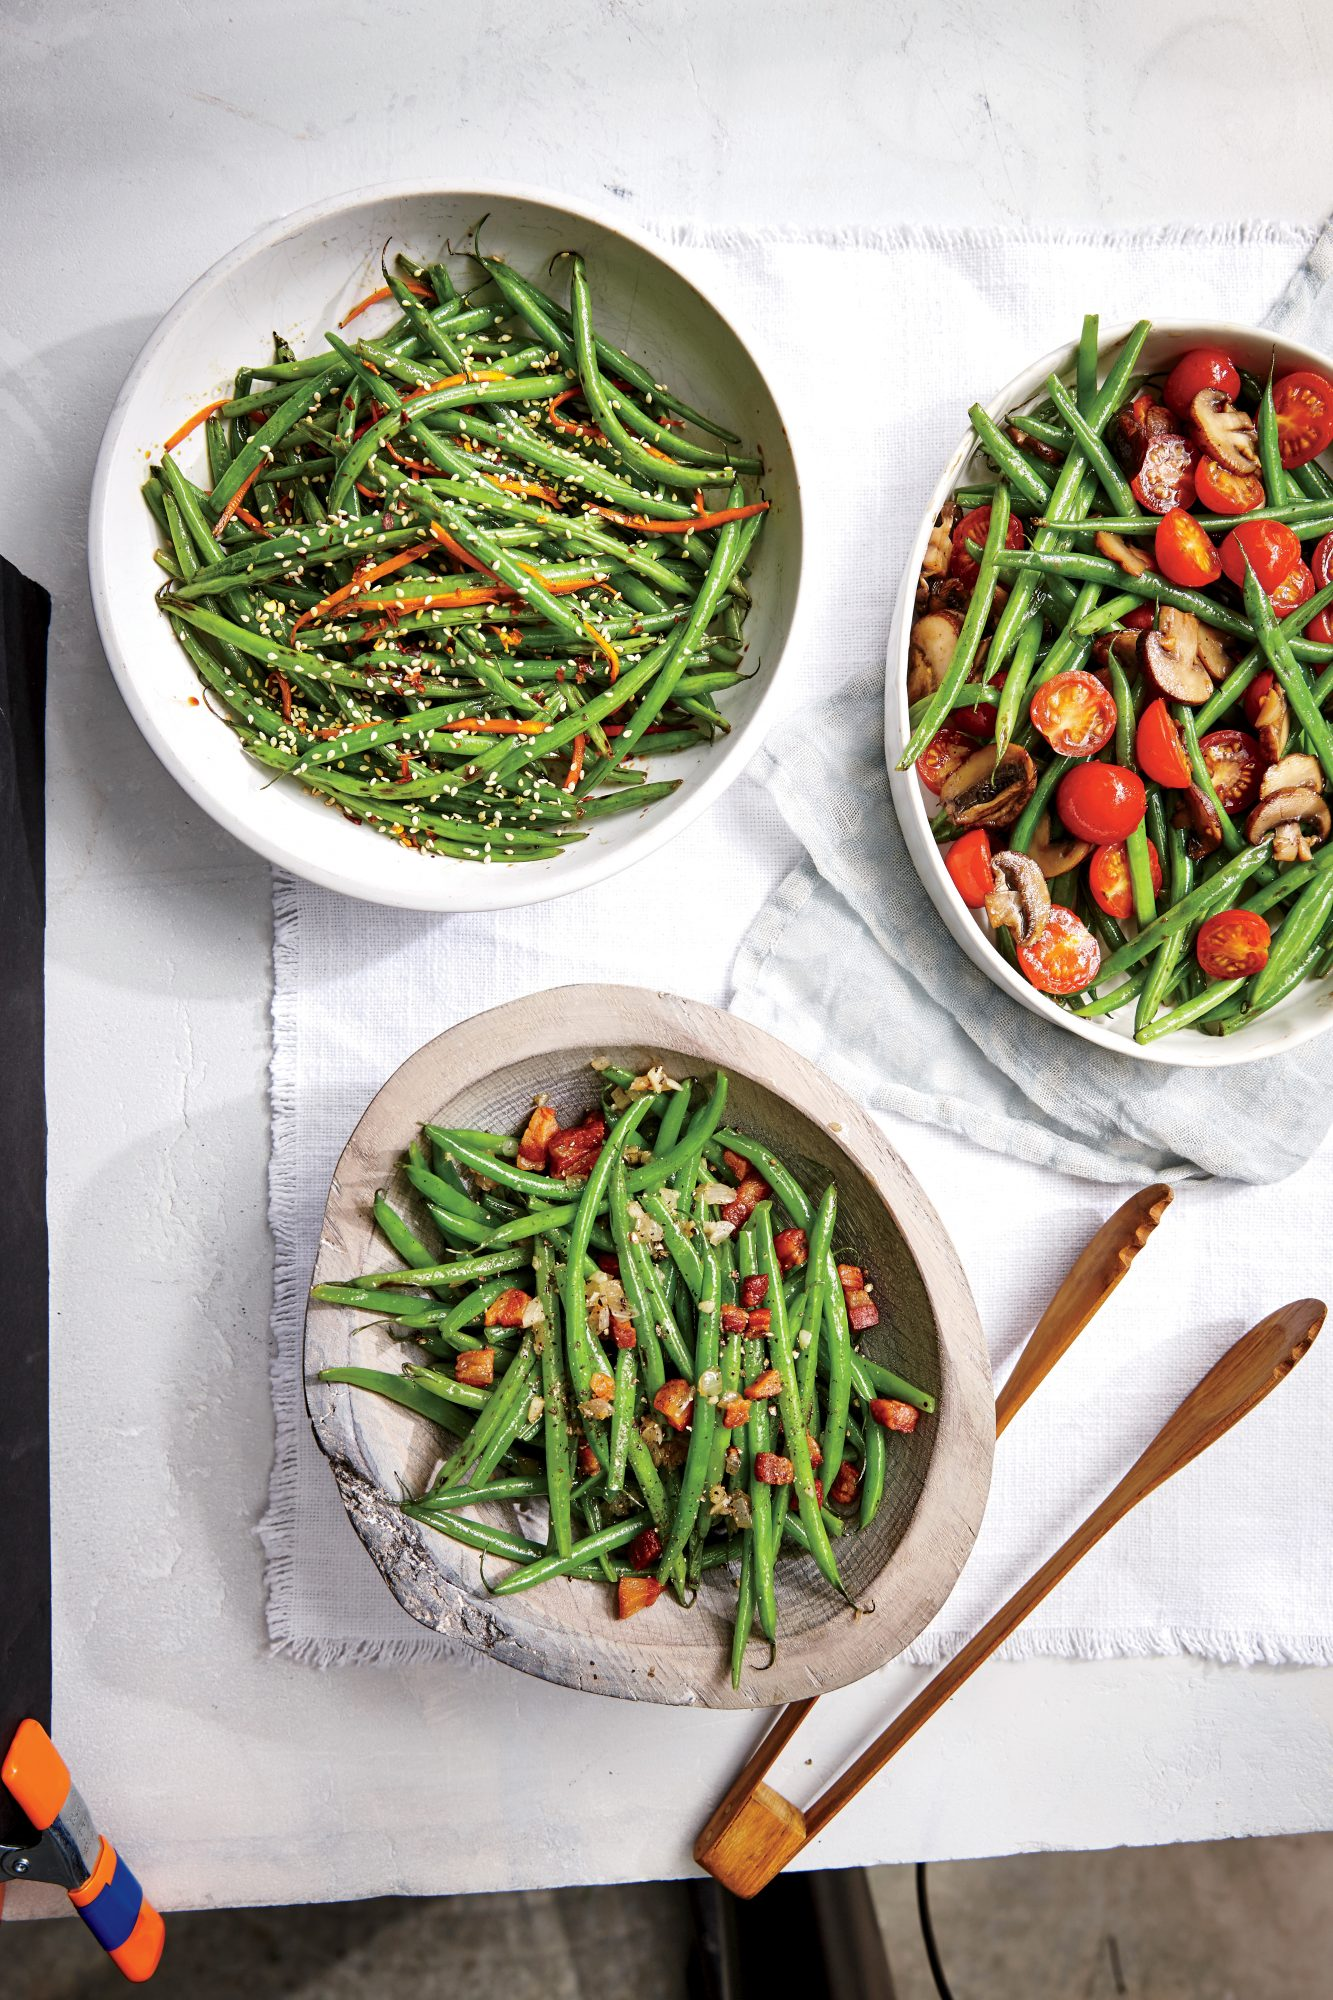 Haricots Verts with Cherry Tomatoes and Mushrooms